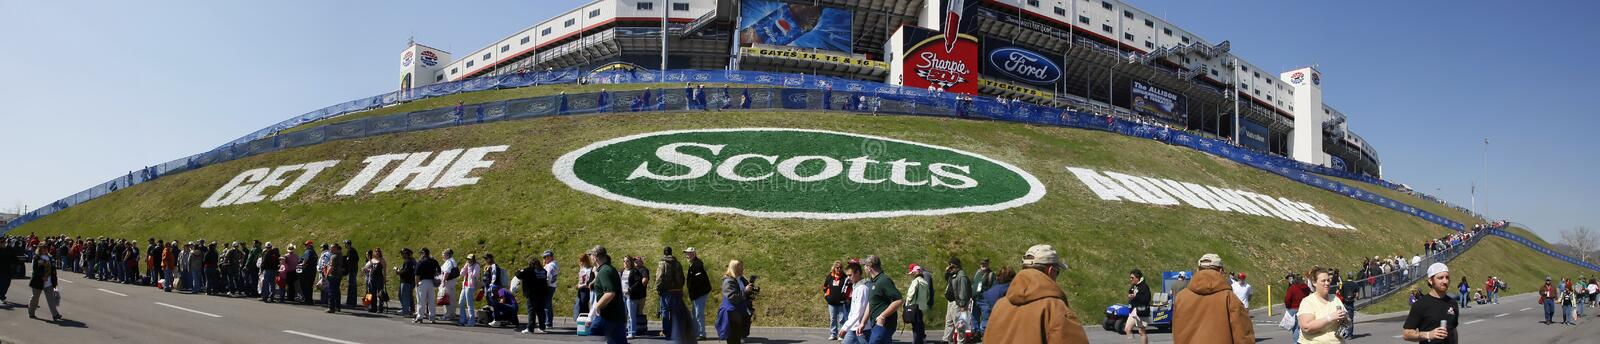 NASCAR Sprint Cup Series Food City 500. 22 March 2009 NASCAR Food City 500 Bristol, TN - The Scotts Advantage Logo at the Bristol Motor Speedway for the running stock image